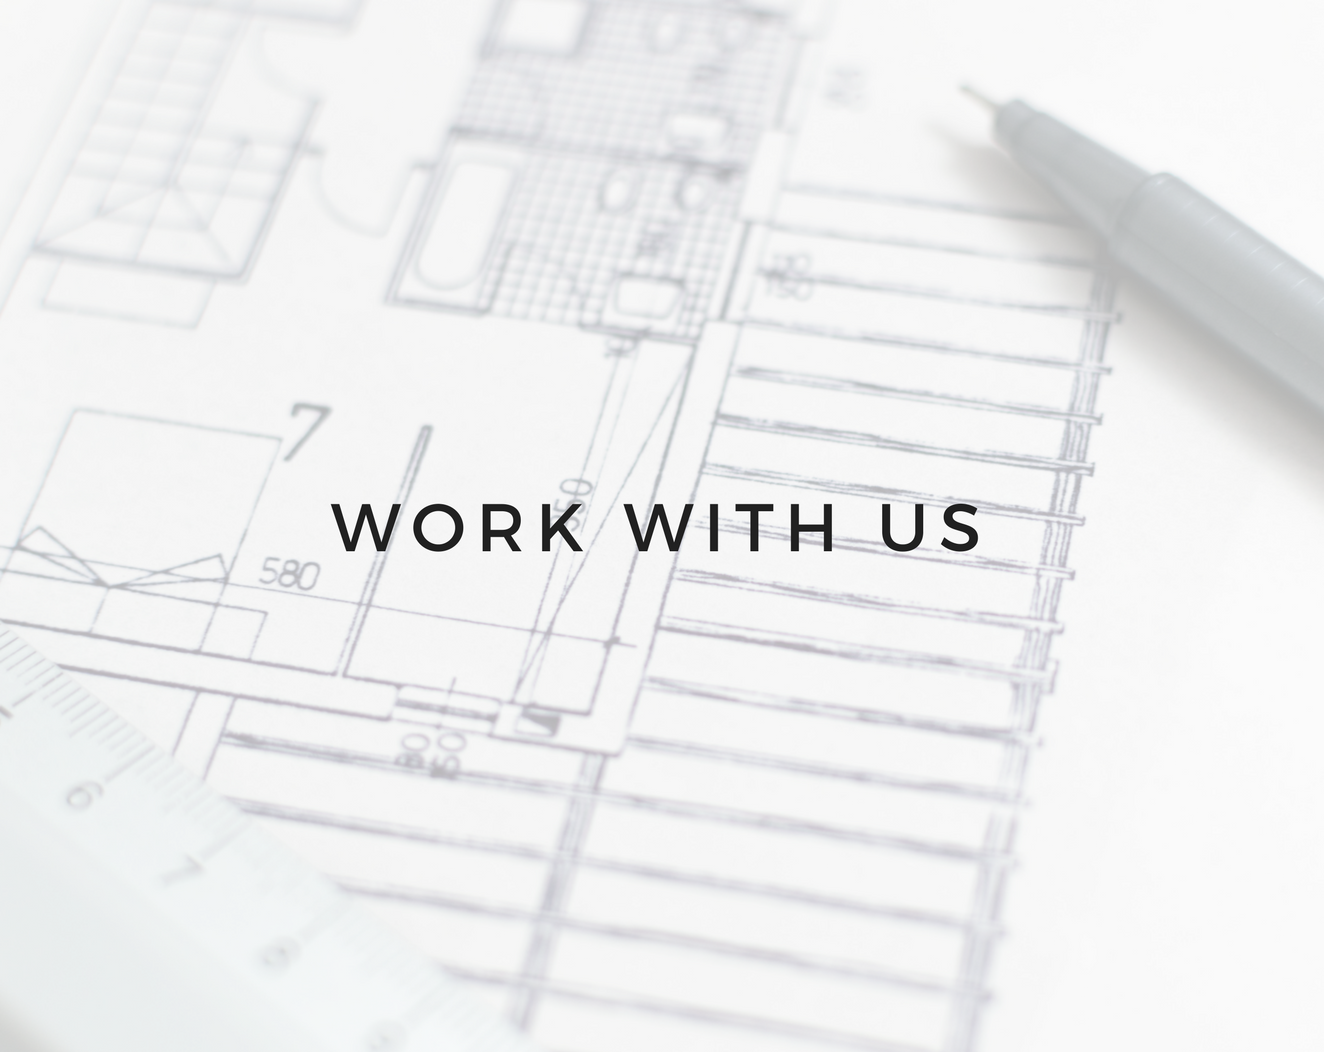 work with us project guru design.jpeg